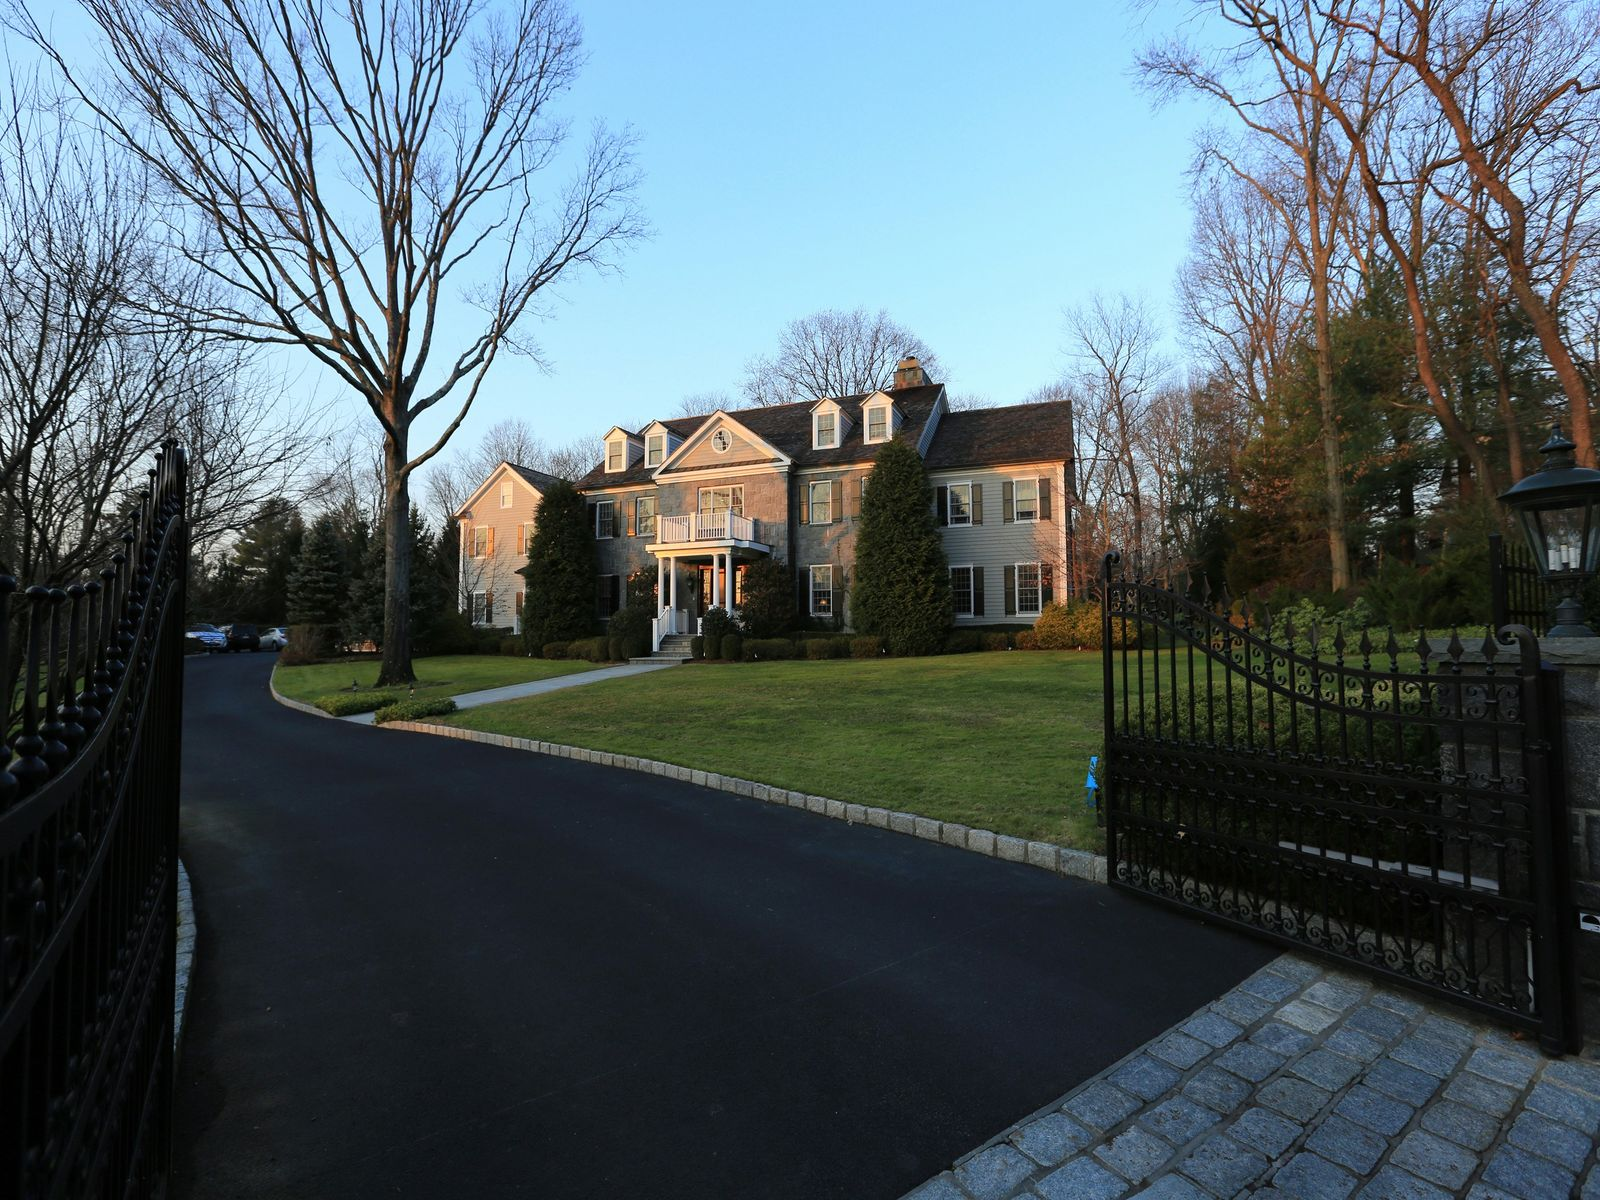 Mid-Country Splendor, Greenwich CT Single Family Home - Greenwich Real Estate